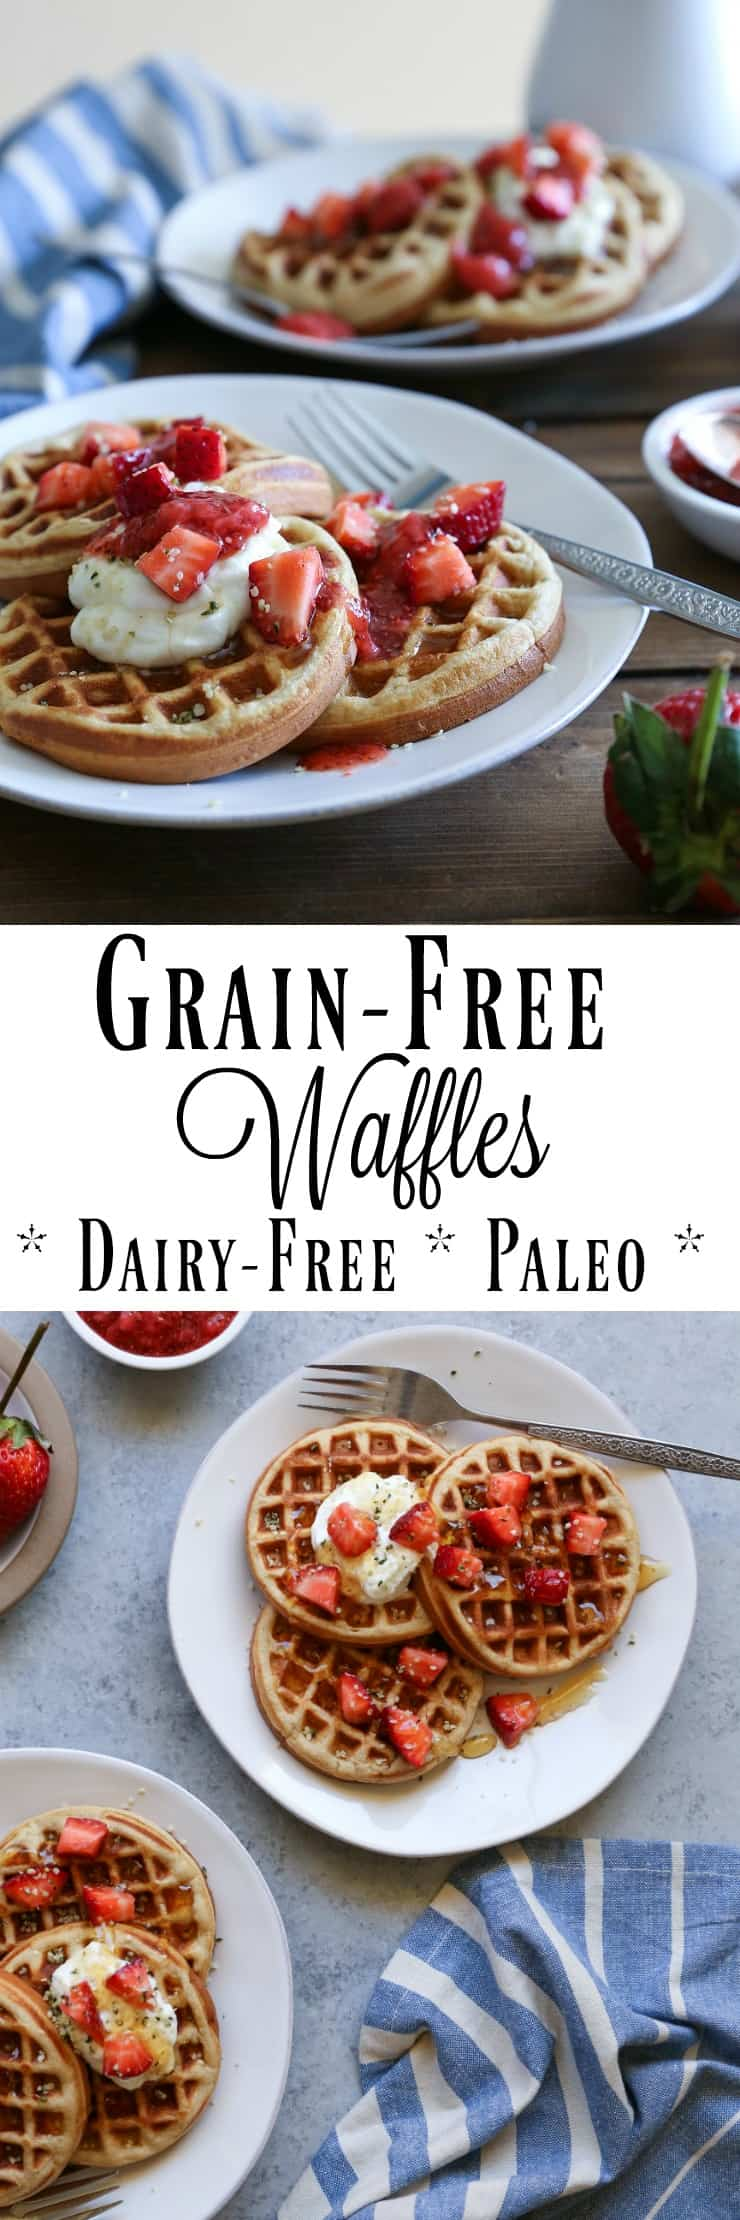 Grain-Free Paleo Waffles made with almond flour - dairy-free, refined sugar-free, and delicious!